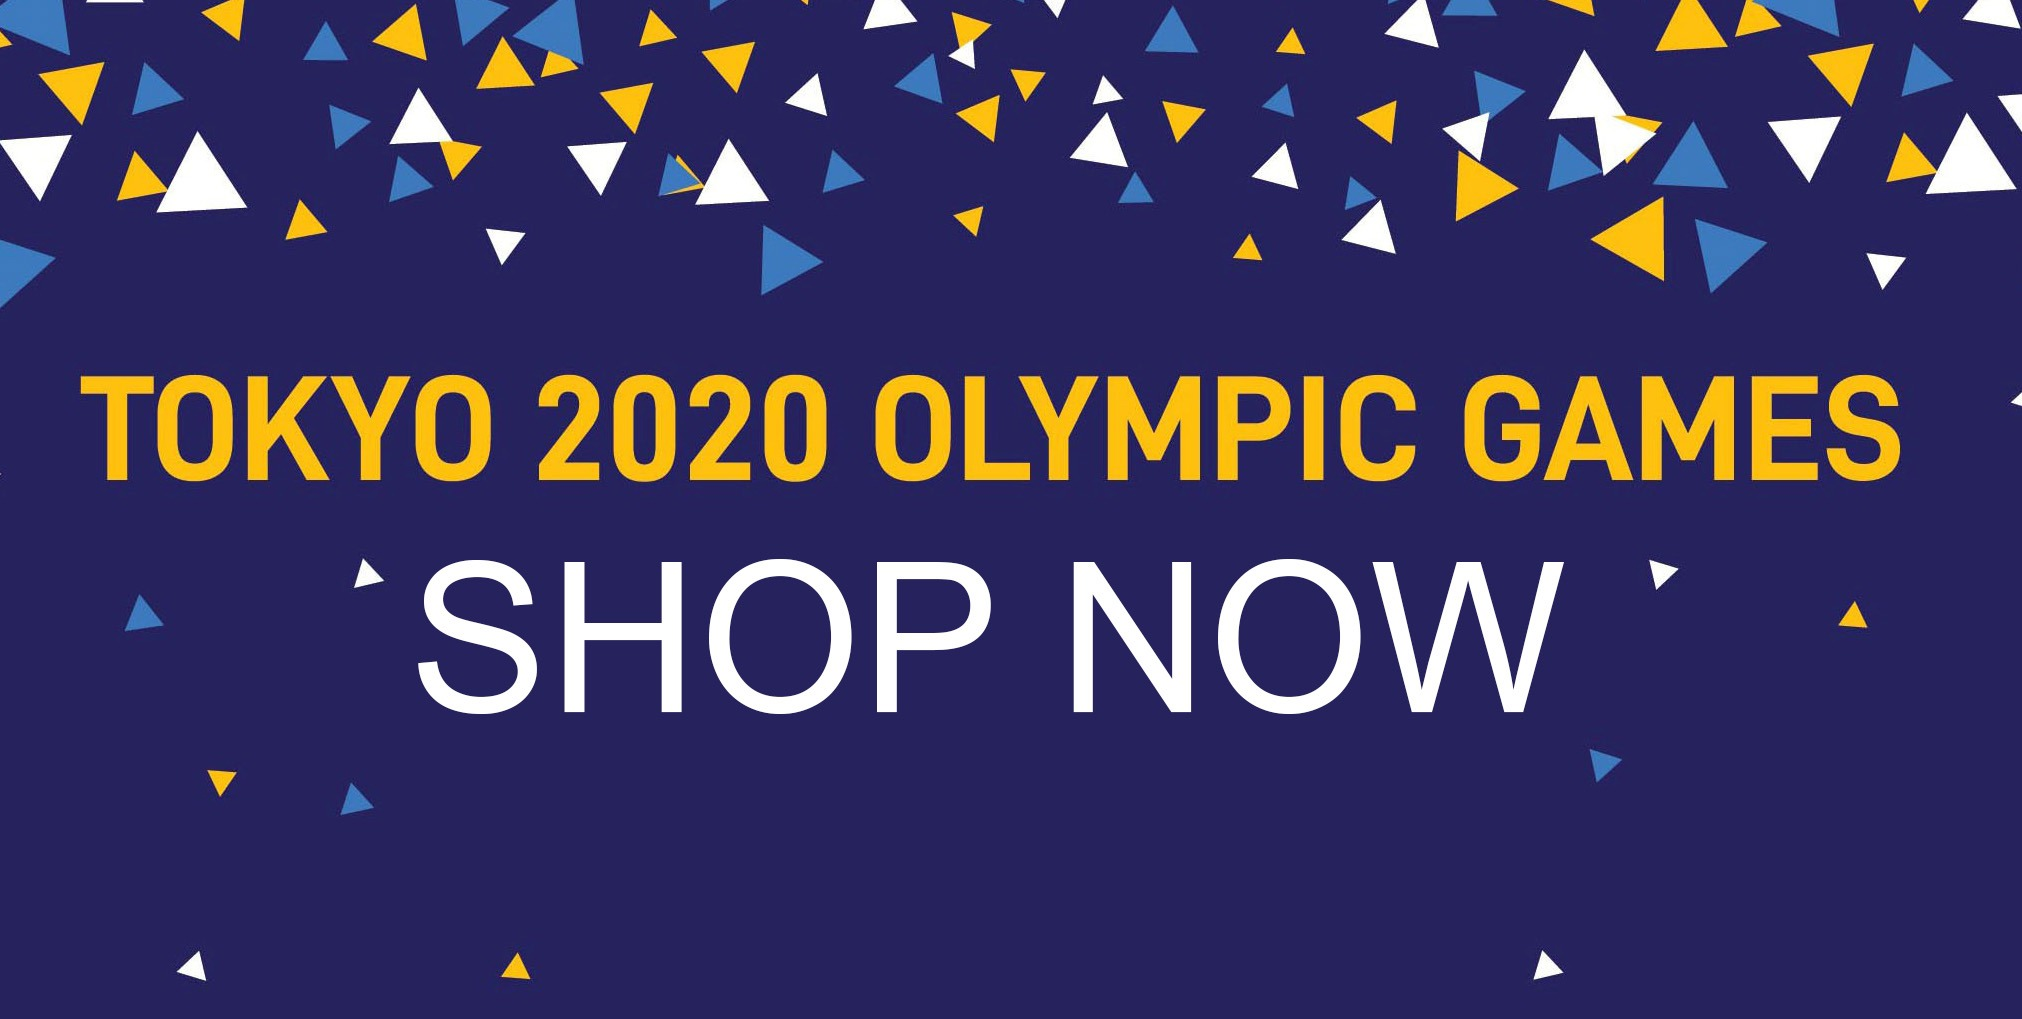 Games For Gold April 2020.Tokyo 2020 Olympic Games Kingdom Sports Group